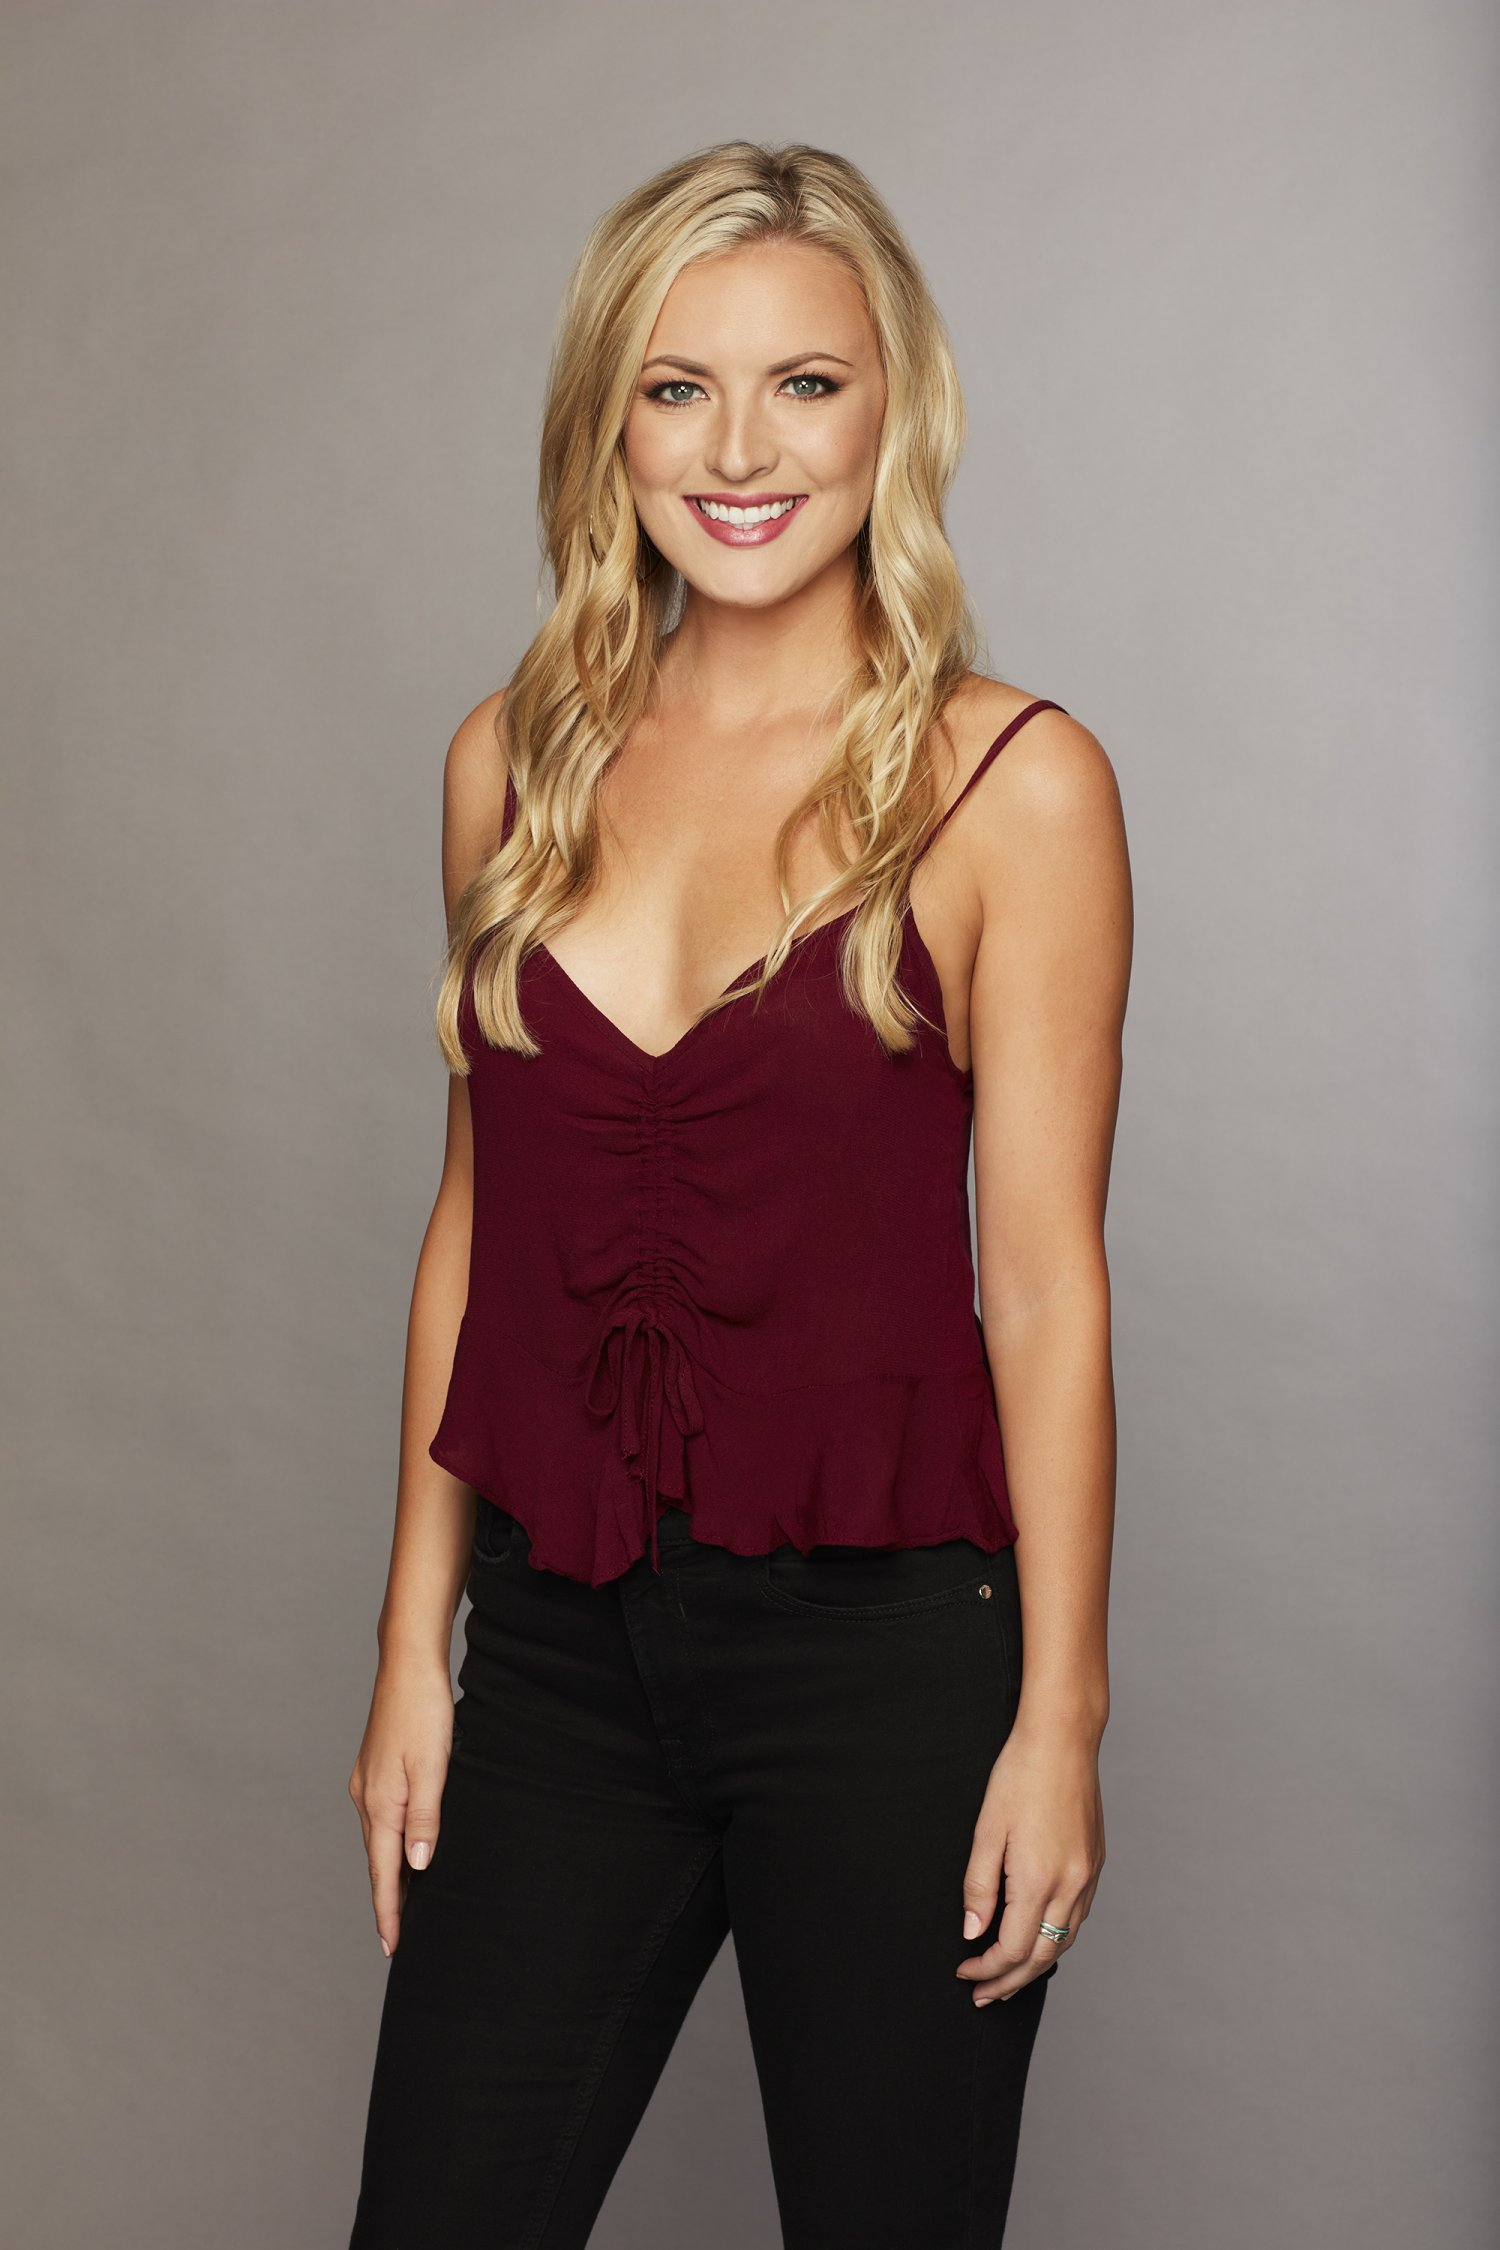 Bachelor 23 - Erika Mcnutt - Discussion - *Sleuthing Spoilers*  4847-o